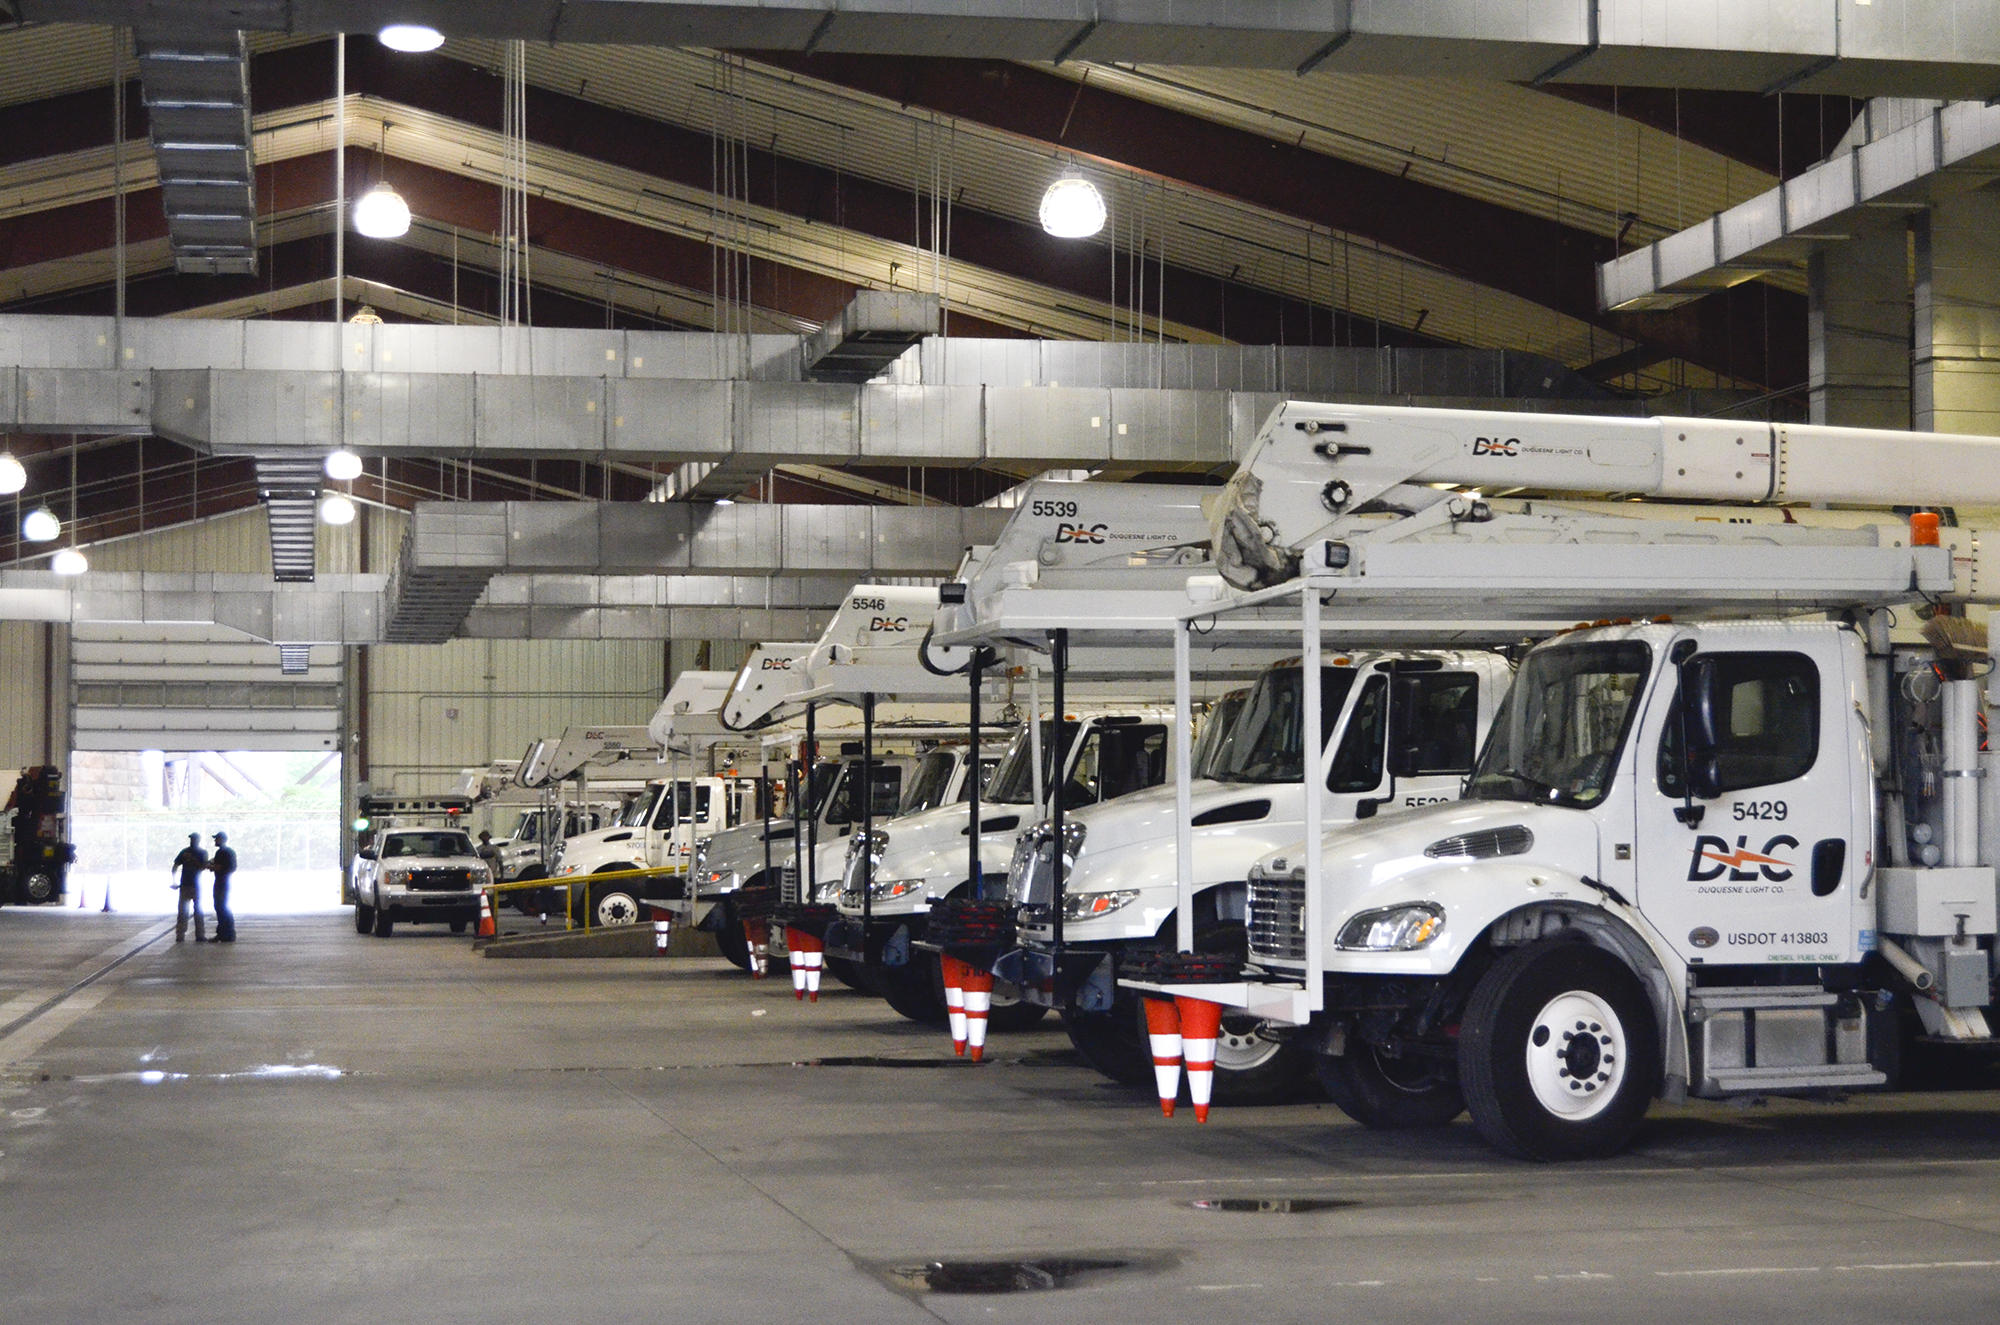 Early In The Morning, Duquesne Light Crews Prepare Their Trucks For The Day  Ahead Installing New Transformers, Poles And Auto Switches To Reroute Power  ...